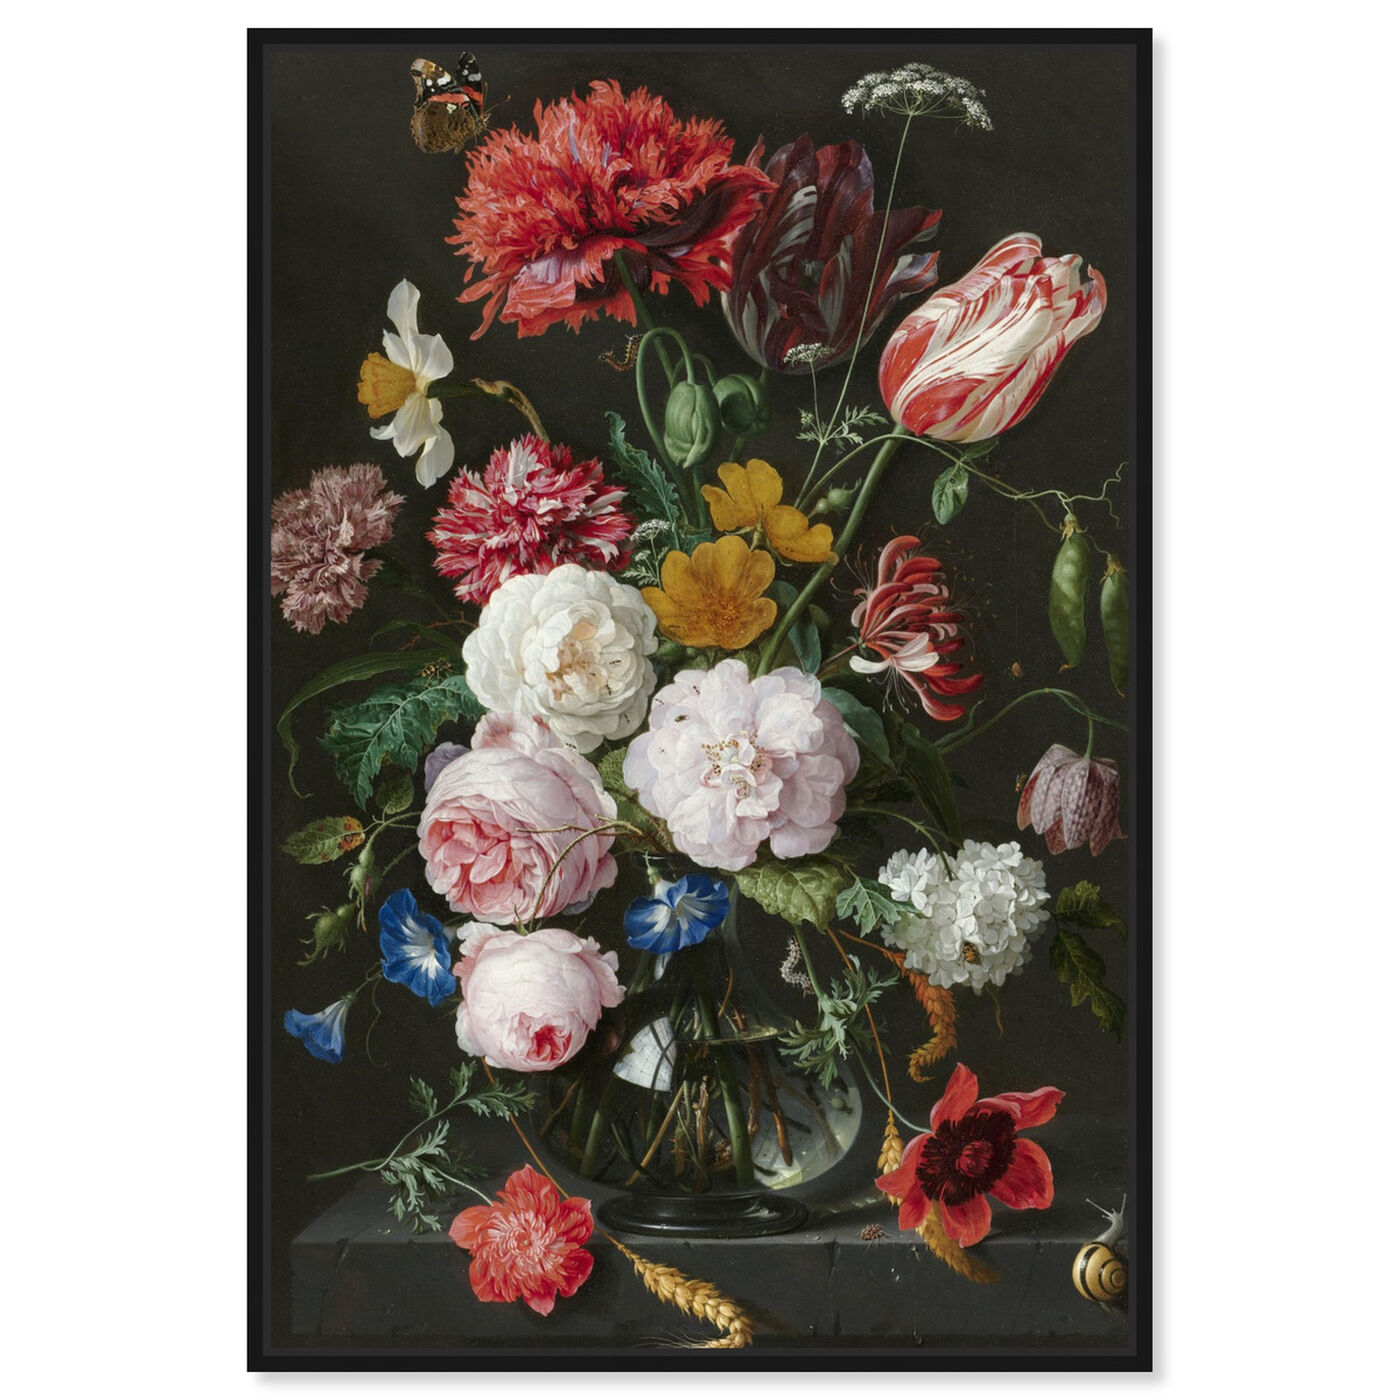 Front view of Flower Arrangement XIV - The Art Cabinet featuring floral and botanical and florals art.